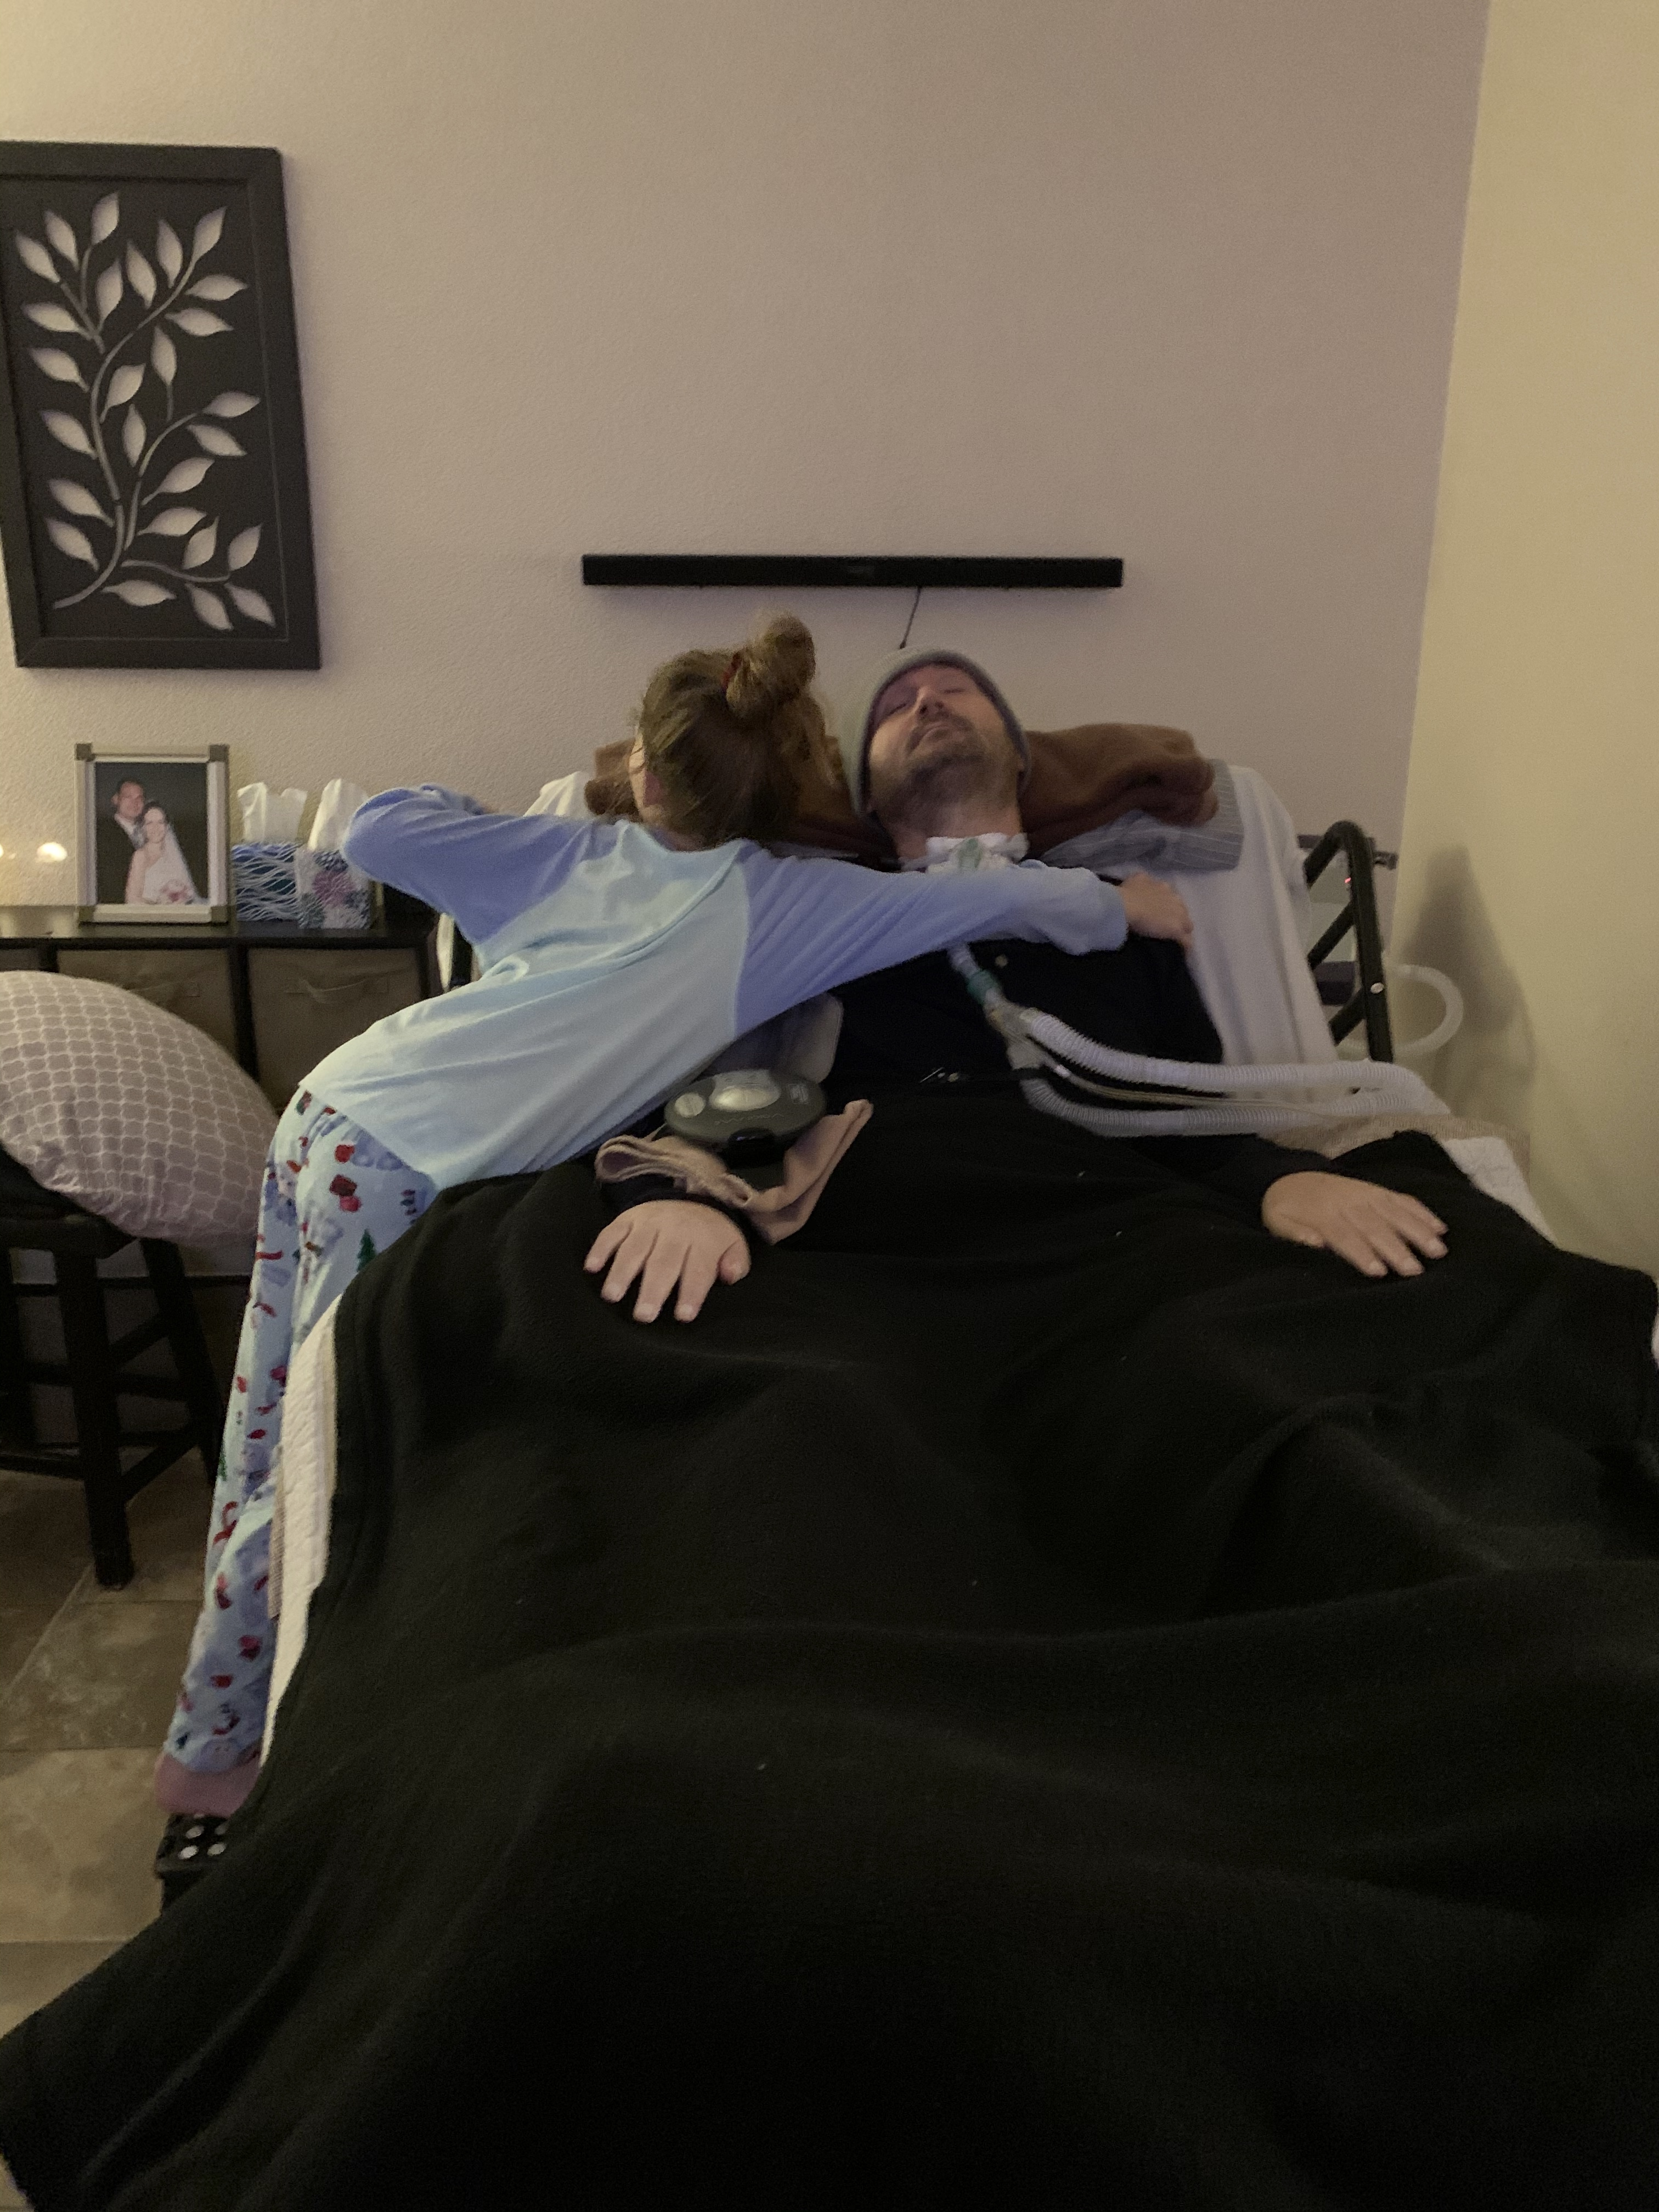 Jeff's daughter giving him a hug as he lies in bed.